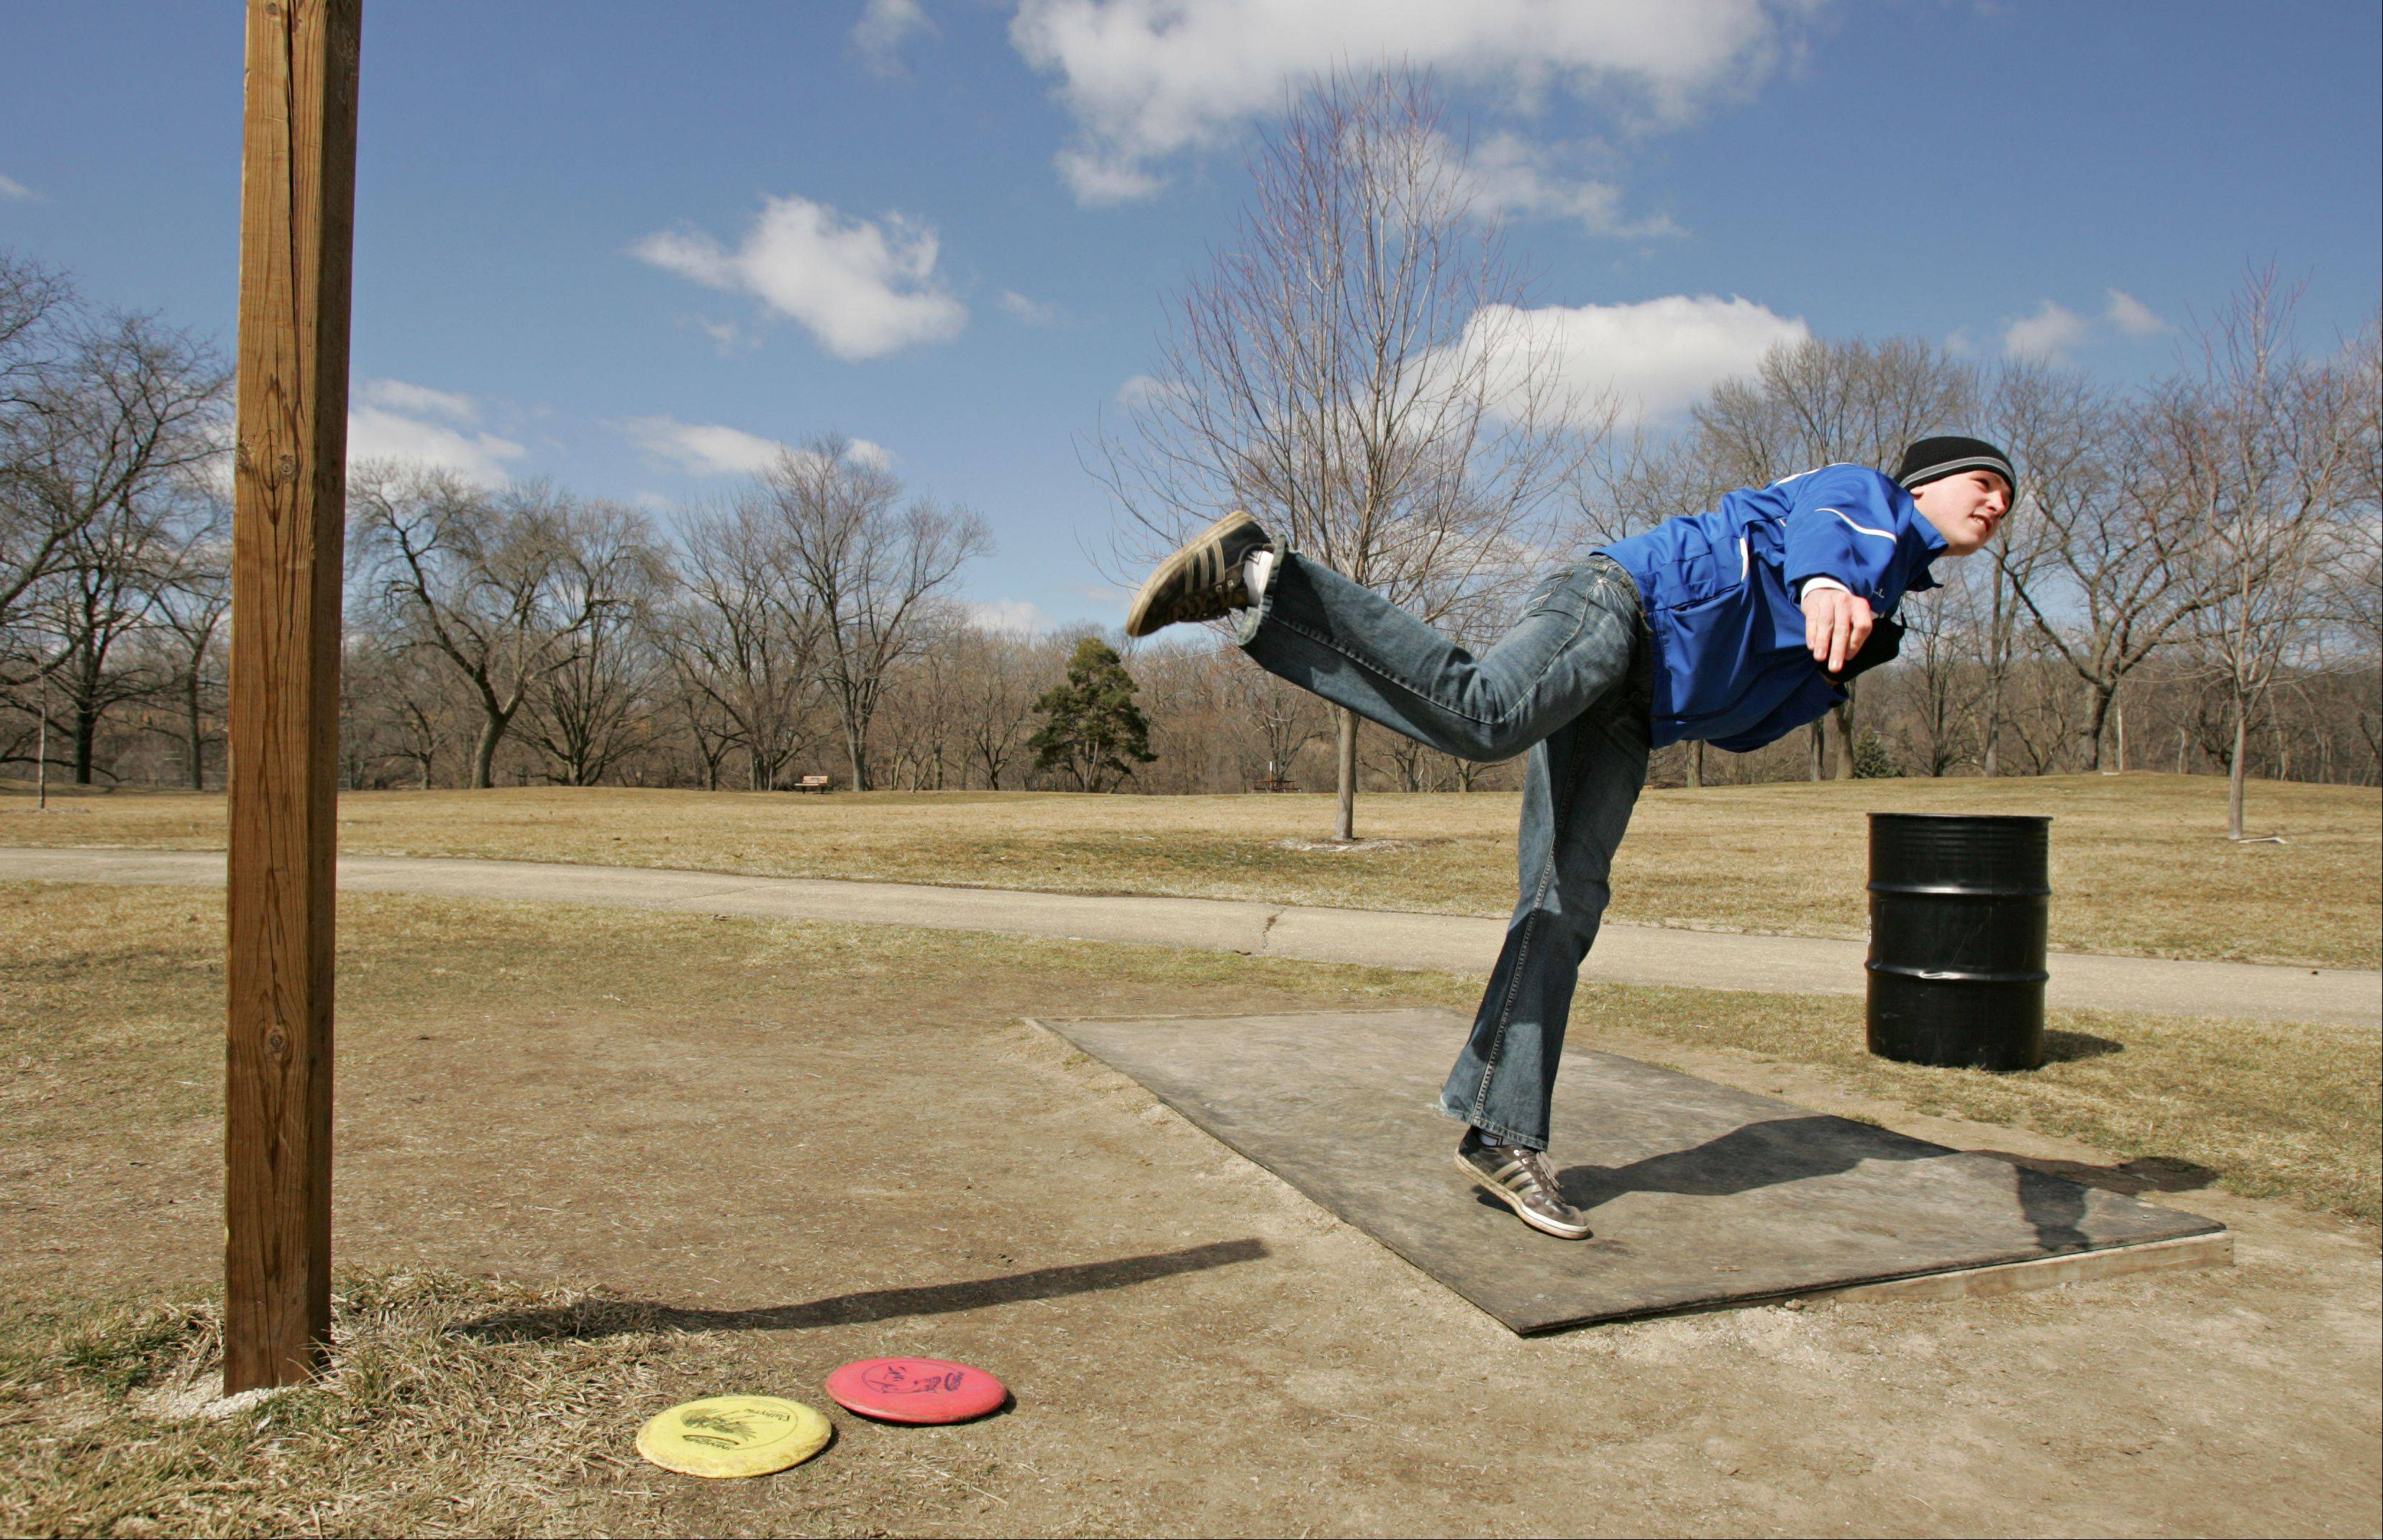 Jack Piotrowski, 18 of St. Charles, hurls his tee shot down the fairway in Wheeler Park Monday afternoon in Geneva while playing a round of disc golf. The Wheaton St. Francis senior had the day off from school, but had to play solo since his golfing buddies were attending classes Monday at other schools. Piotrowski said he took up disc golf after injuring his arm playing baseball.